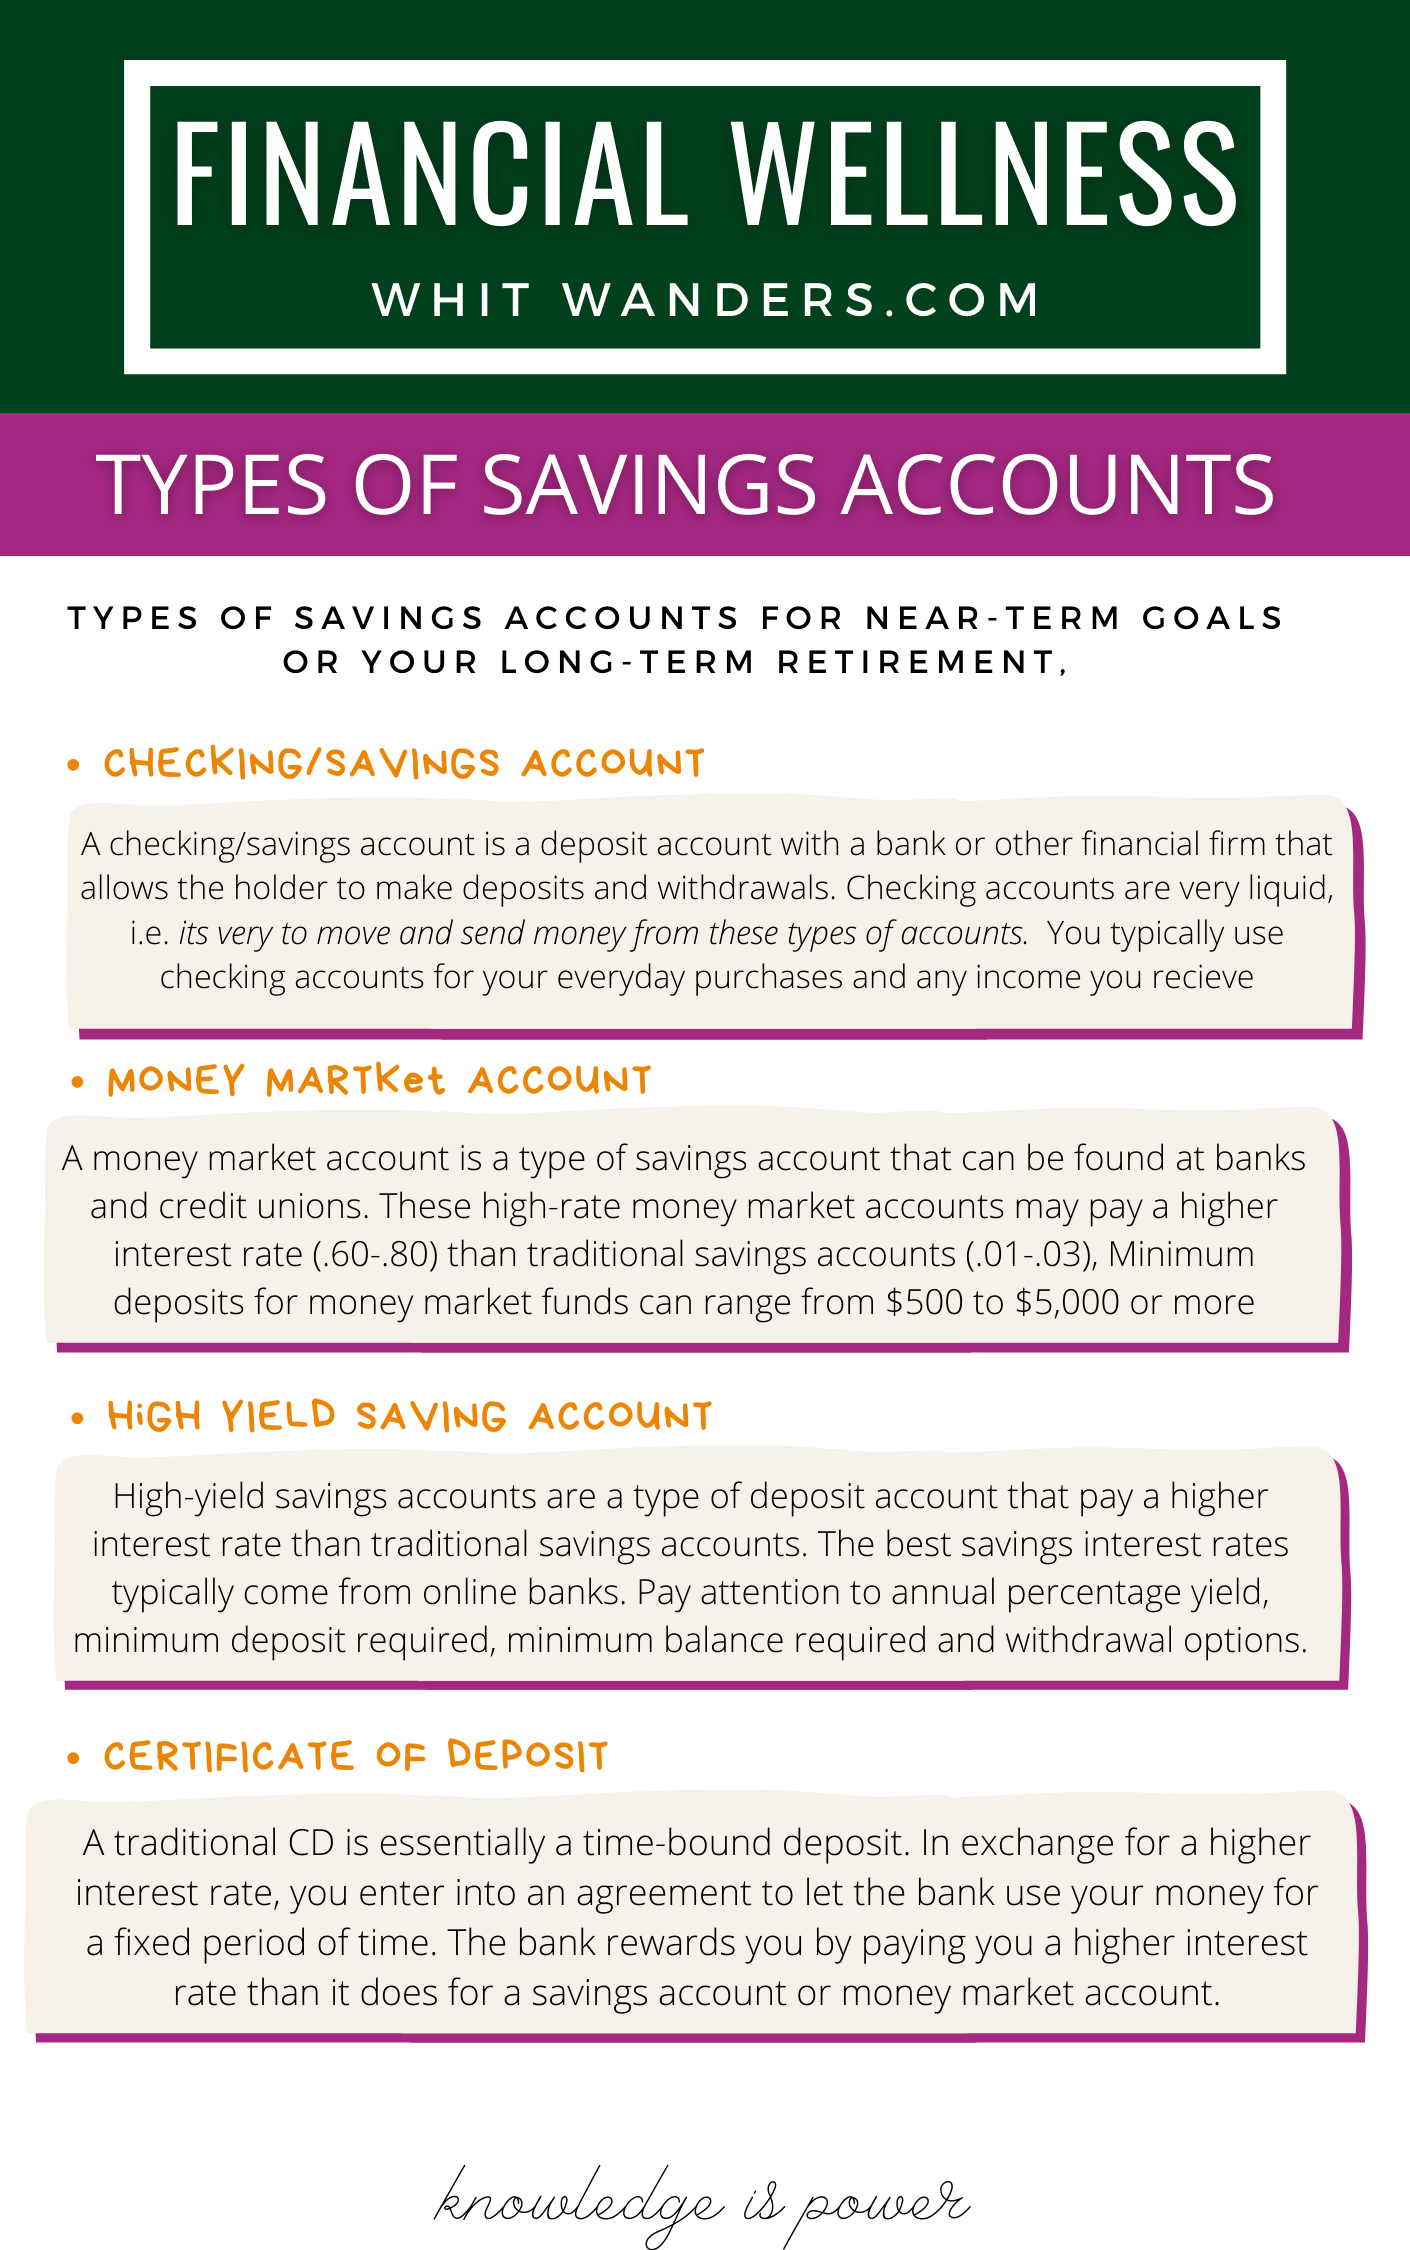 Types of Savings accounts by popular Seattle career blog, Whit Wanders: image of a digital Types of Savings Accounts information sheet.